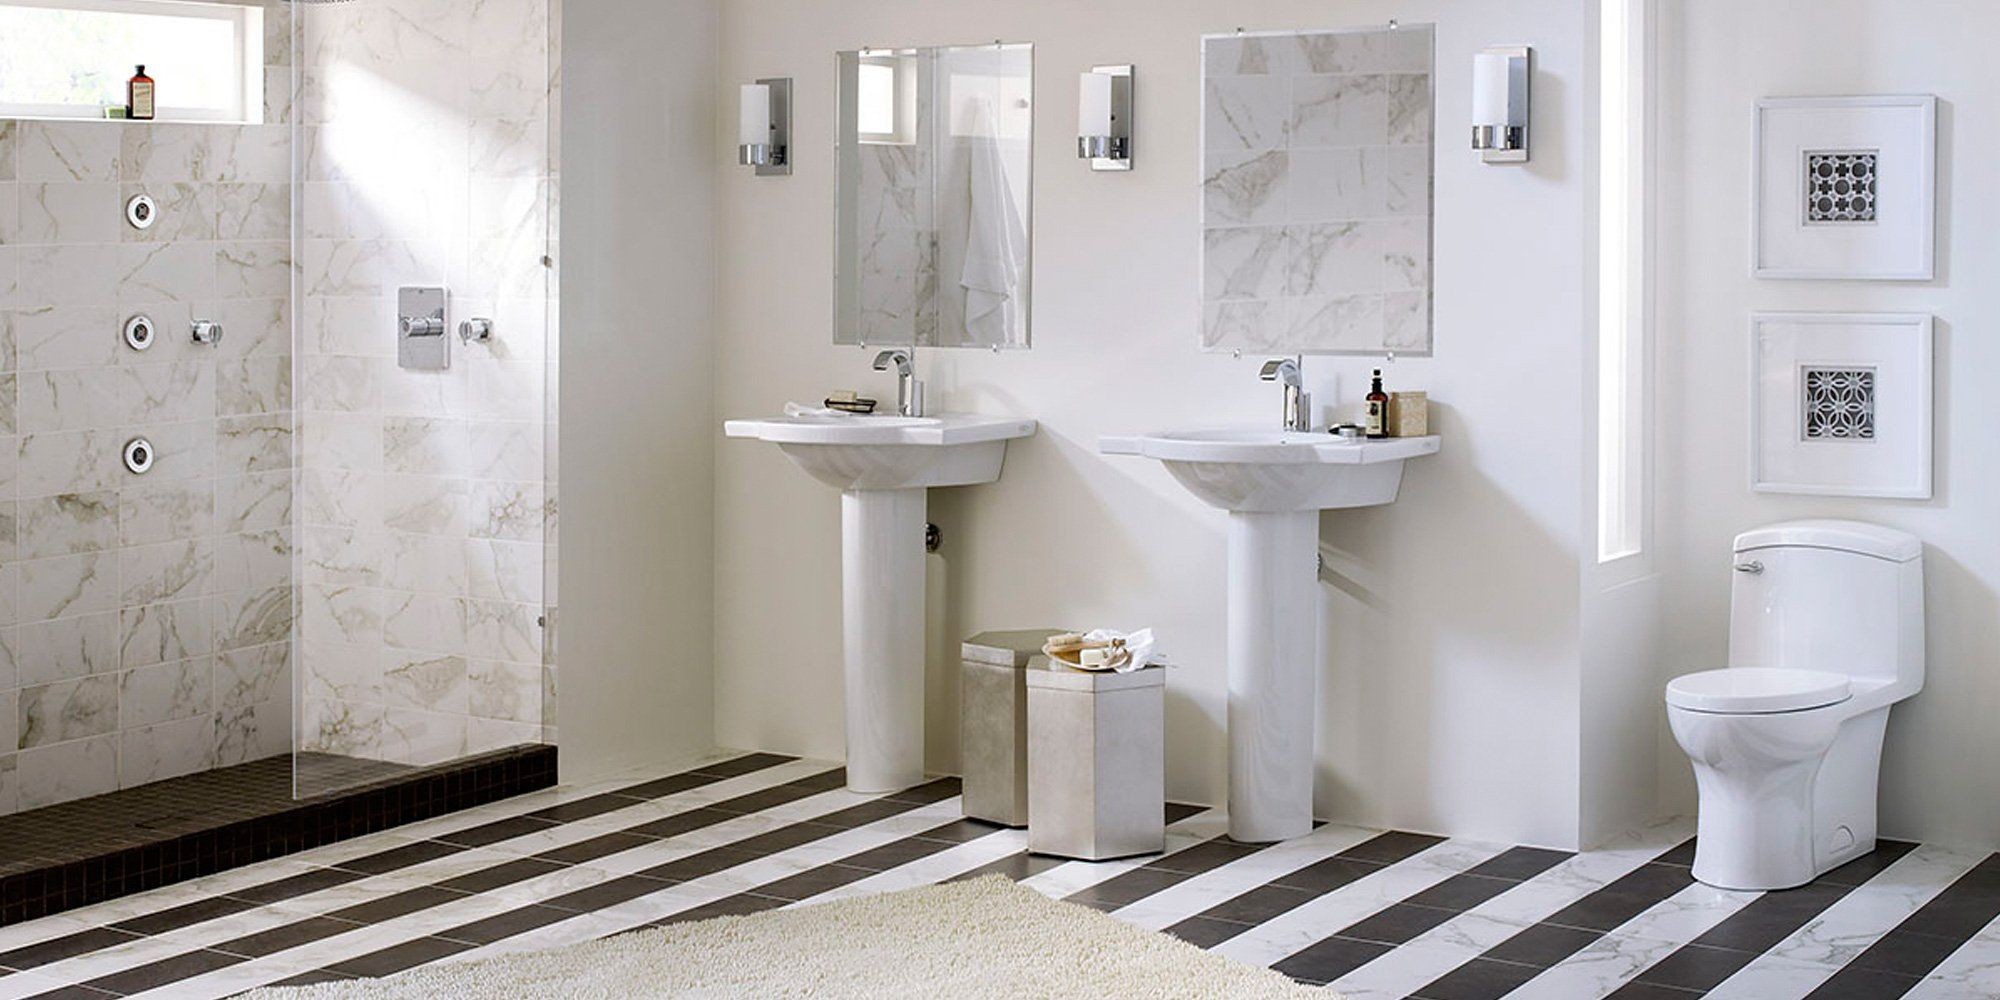 DXV American standard double sinks and walk in shower